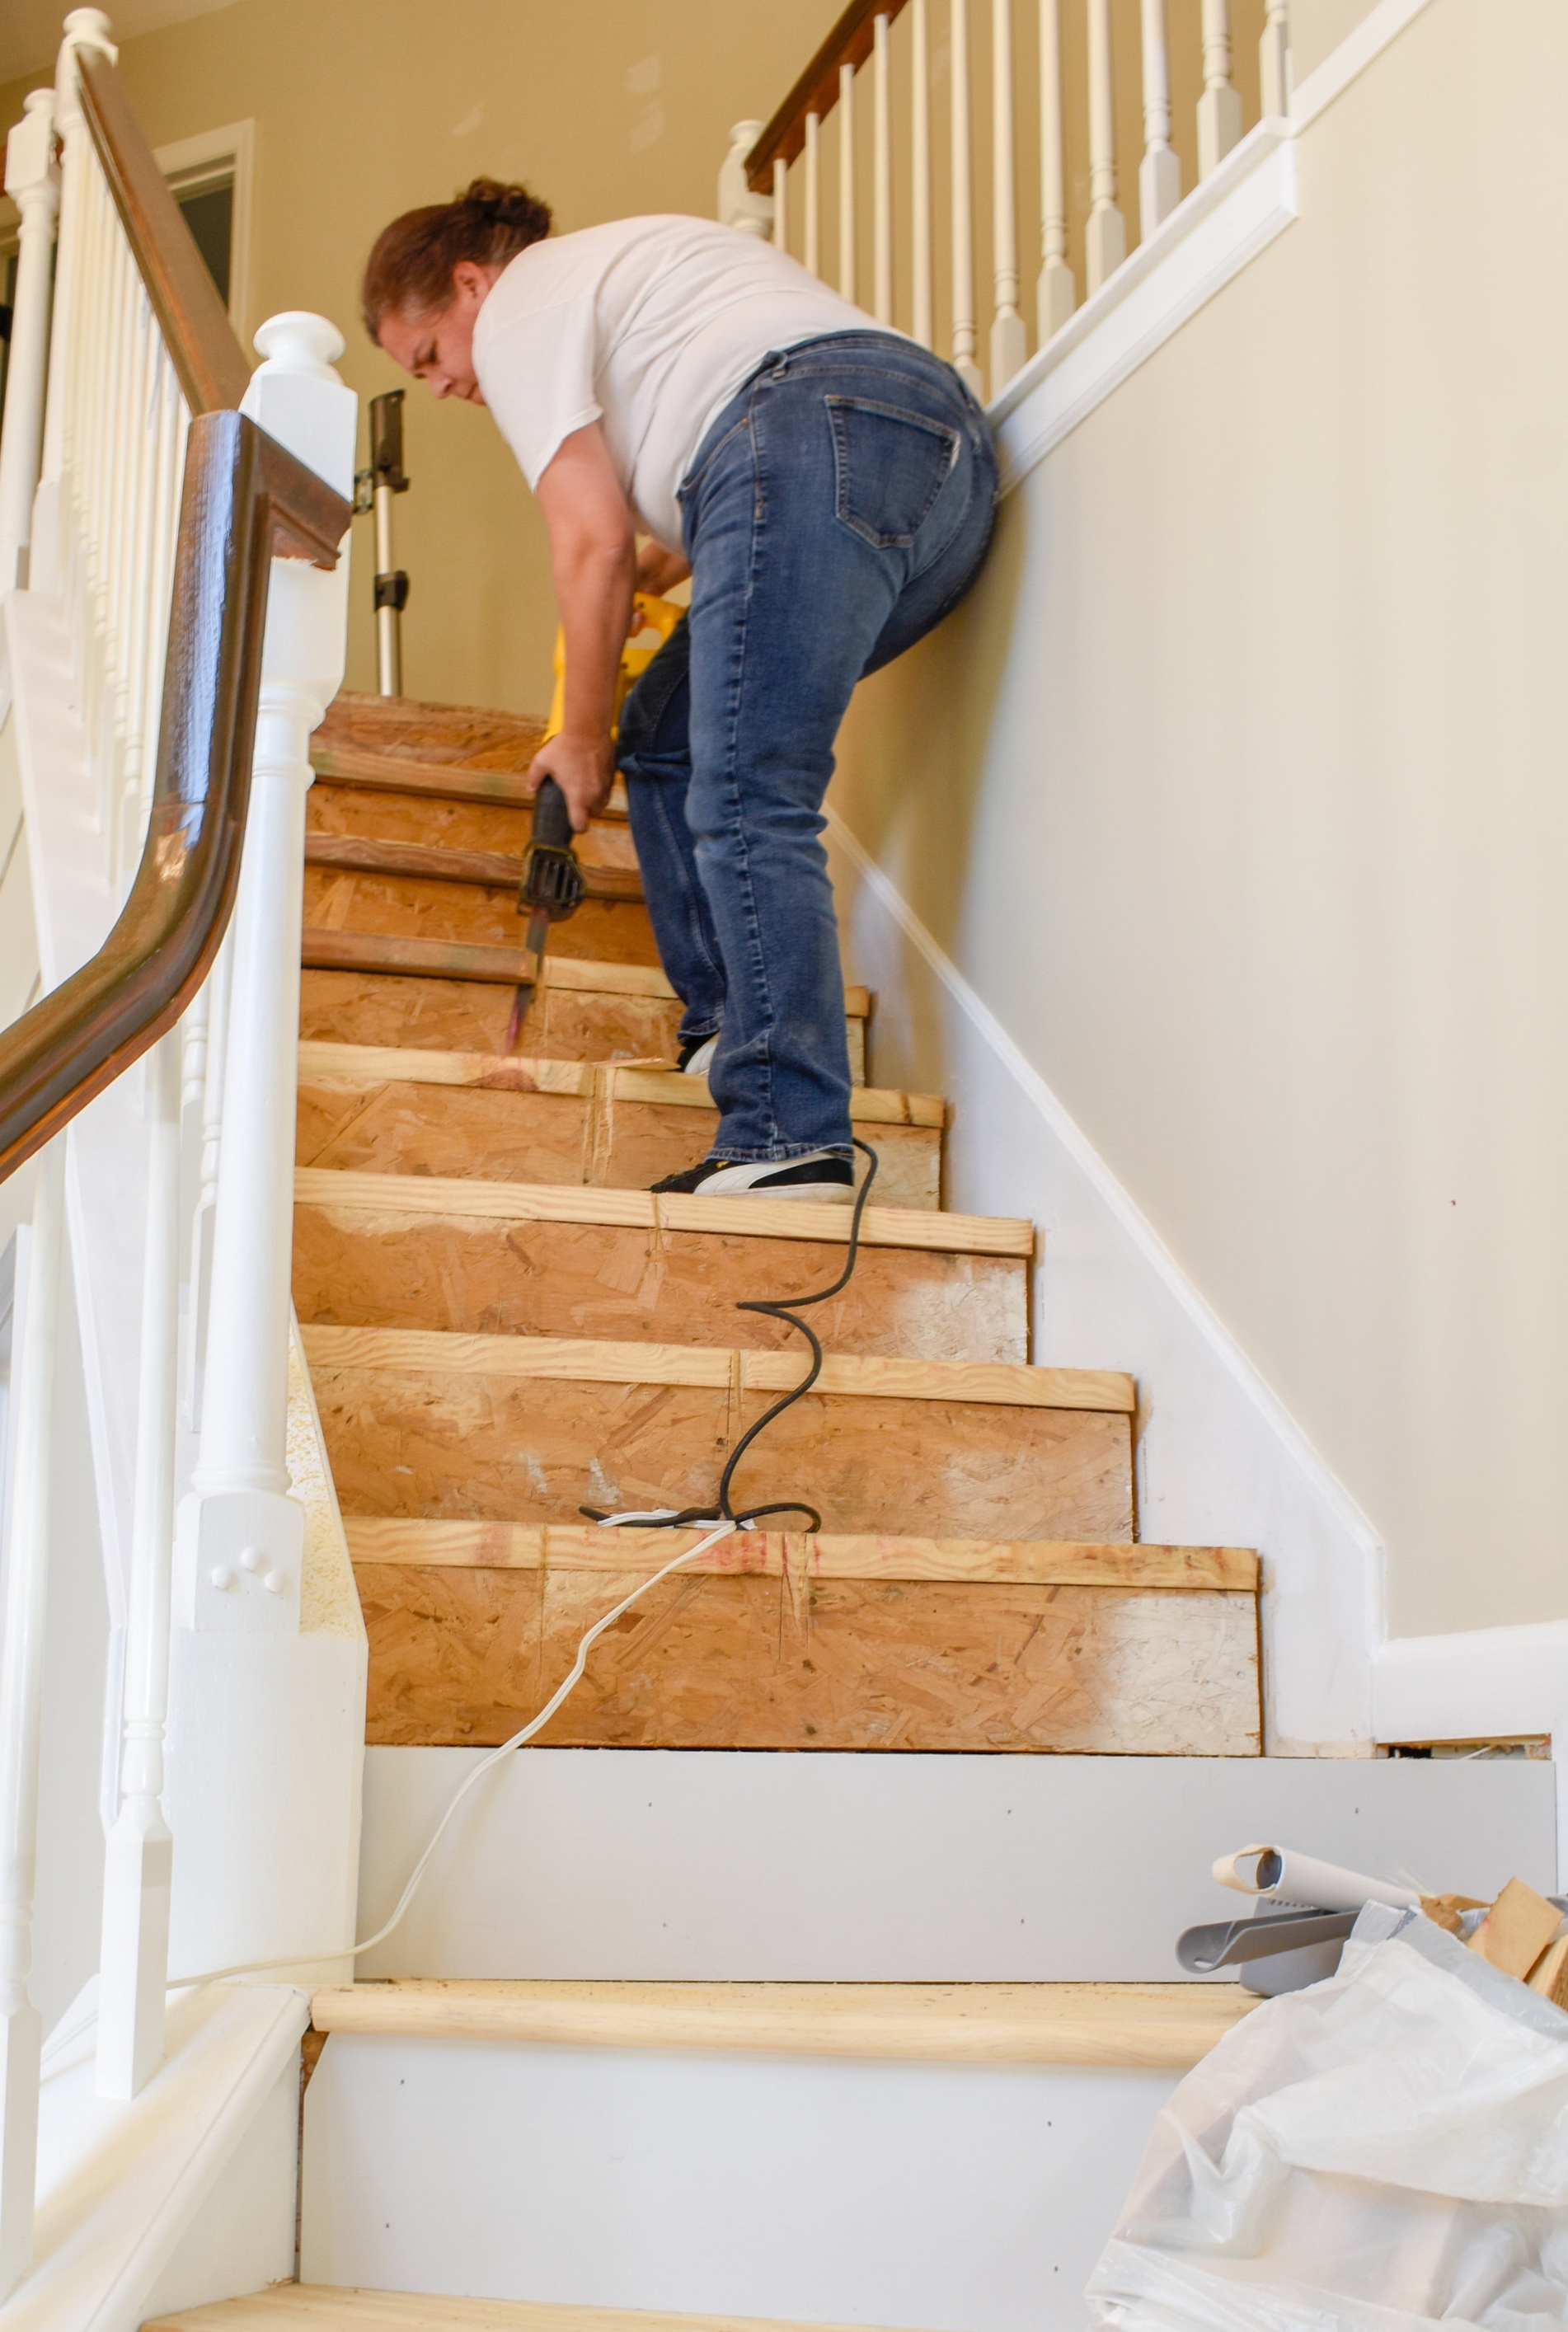 Diy Hardwood Staircase Makeover Replacing Carpet With Wood Treads | Tread Boards For Stairs | Barn Wood | Unfinished Pine | Stair Parts | Reclaimed Wood | Stair Case